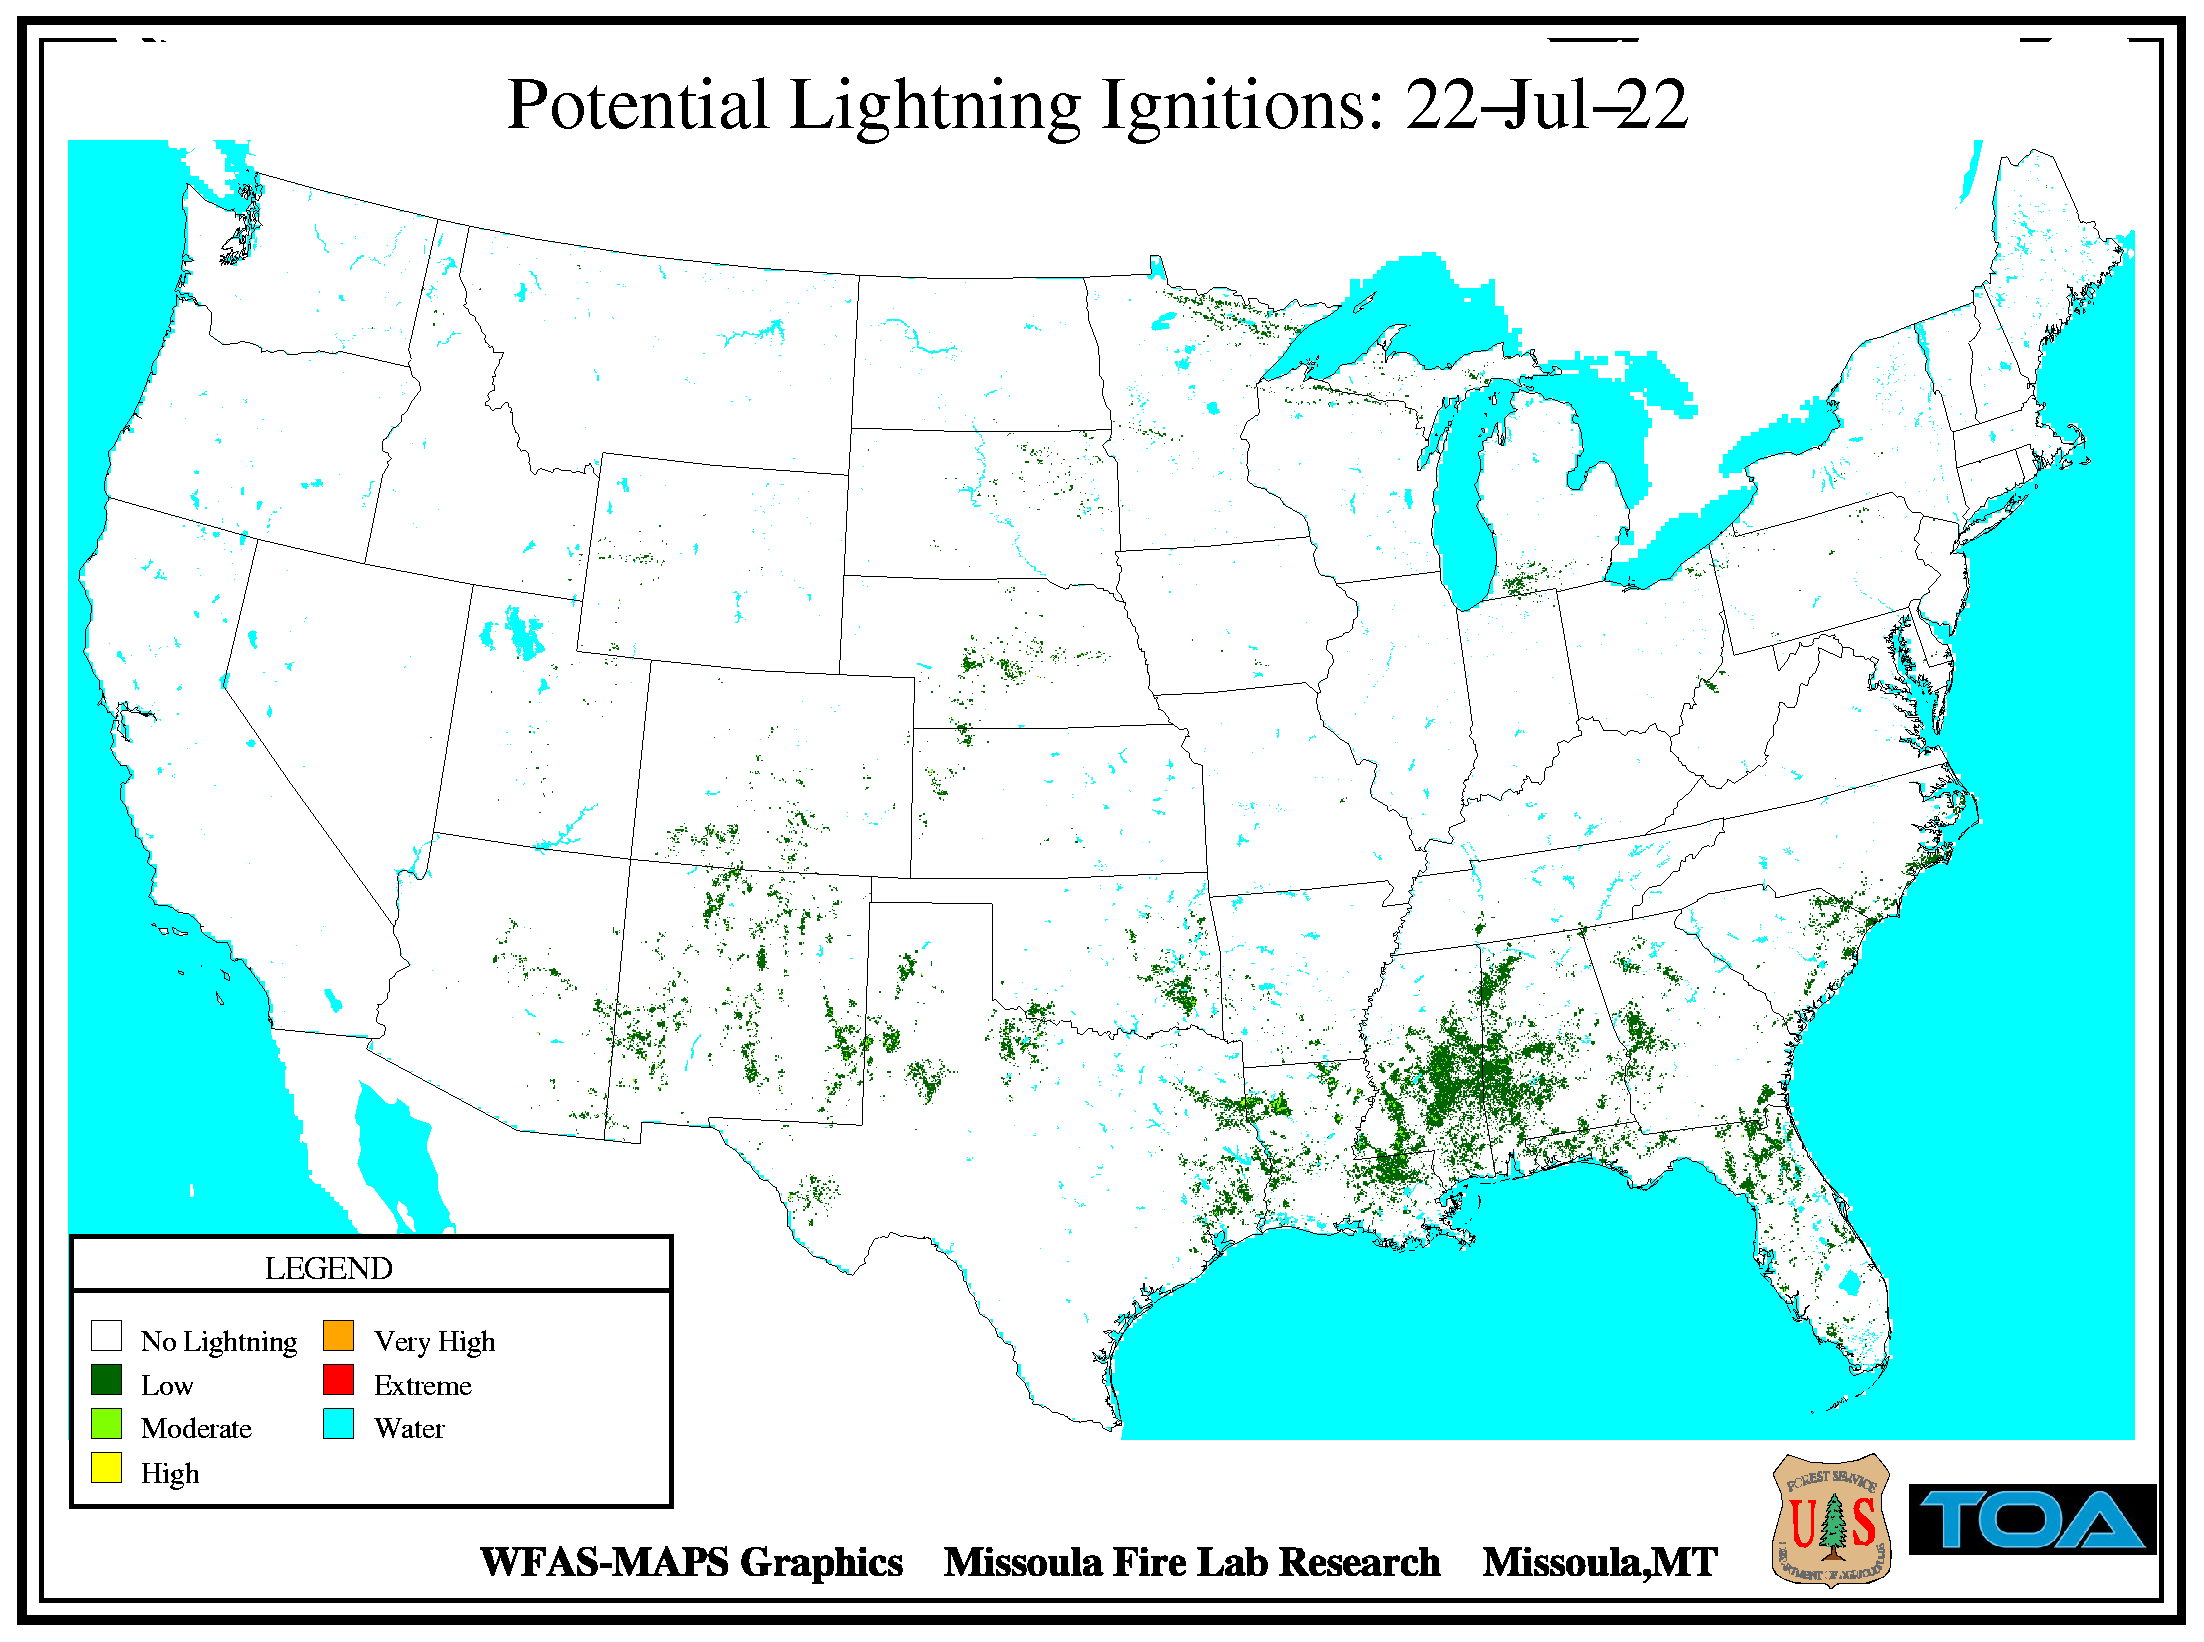 National Potential Lightning Ignitions